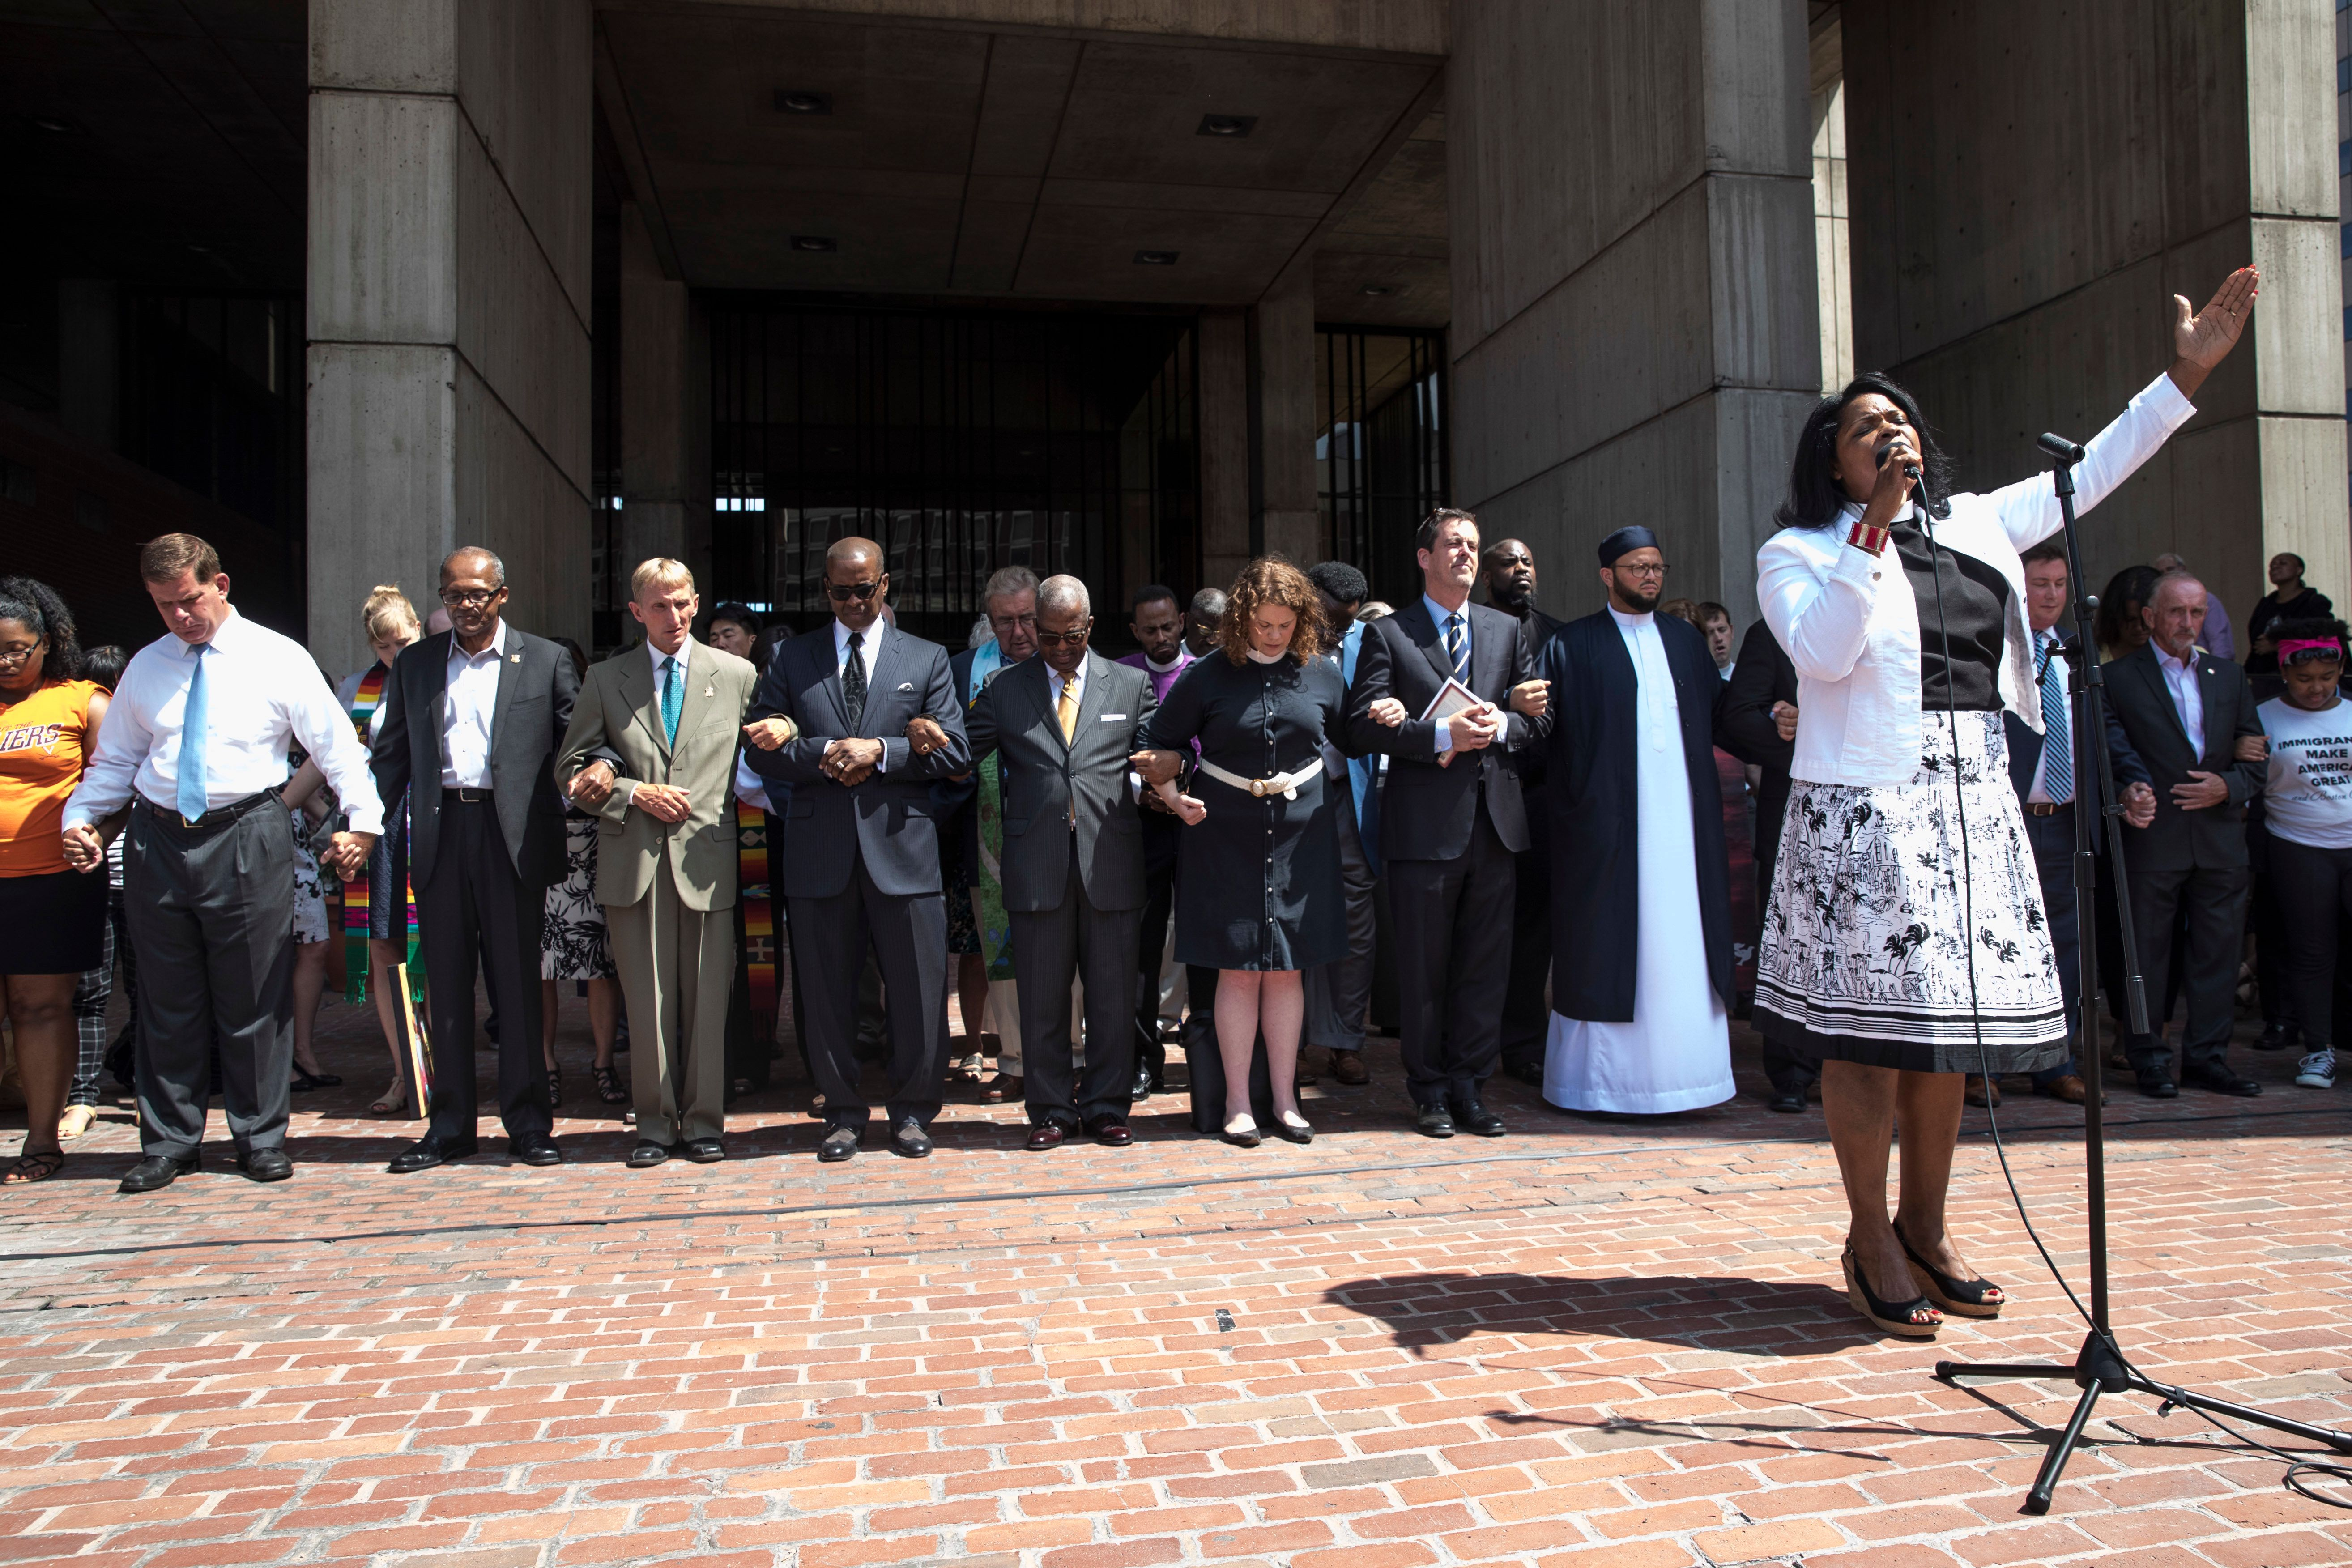 The Rev. Arlene Hall leads a prayer for peace at City Hall Plaza, as Boston Mayor Marty Walsh and Police...